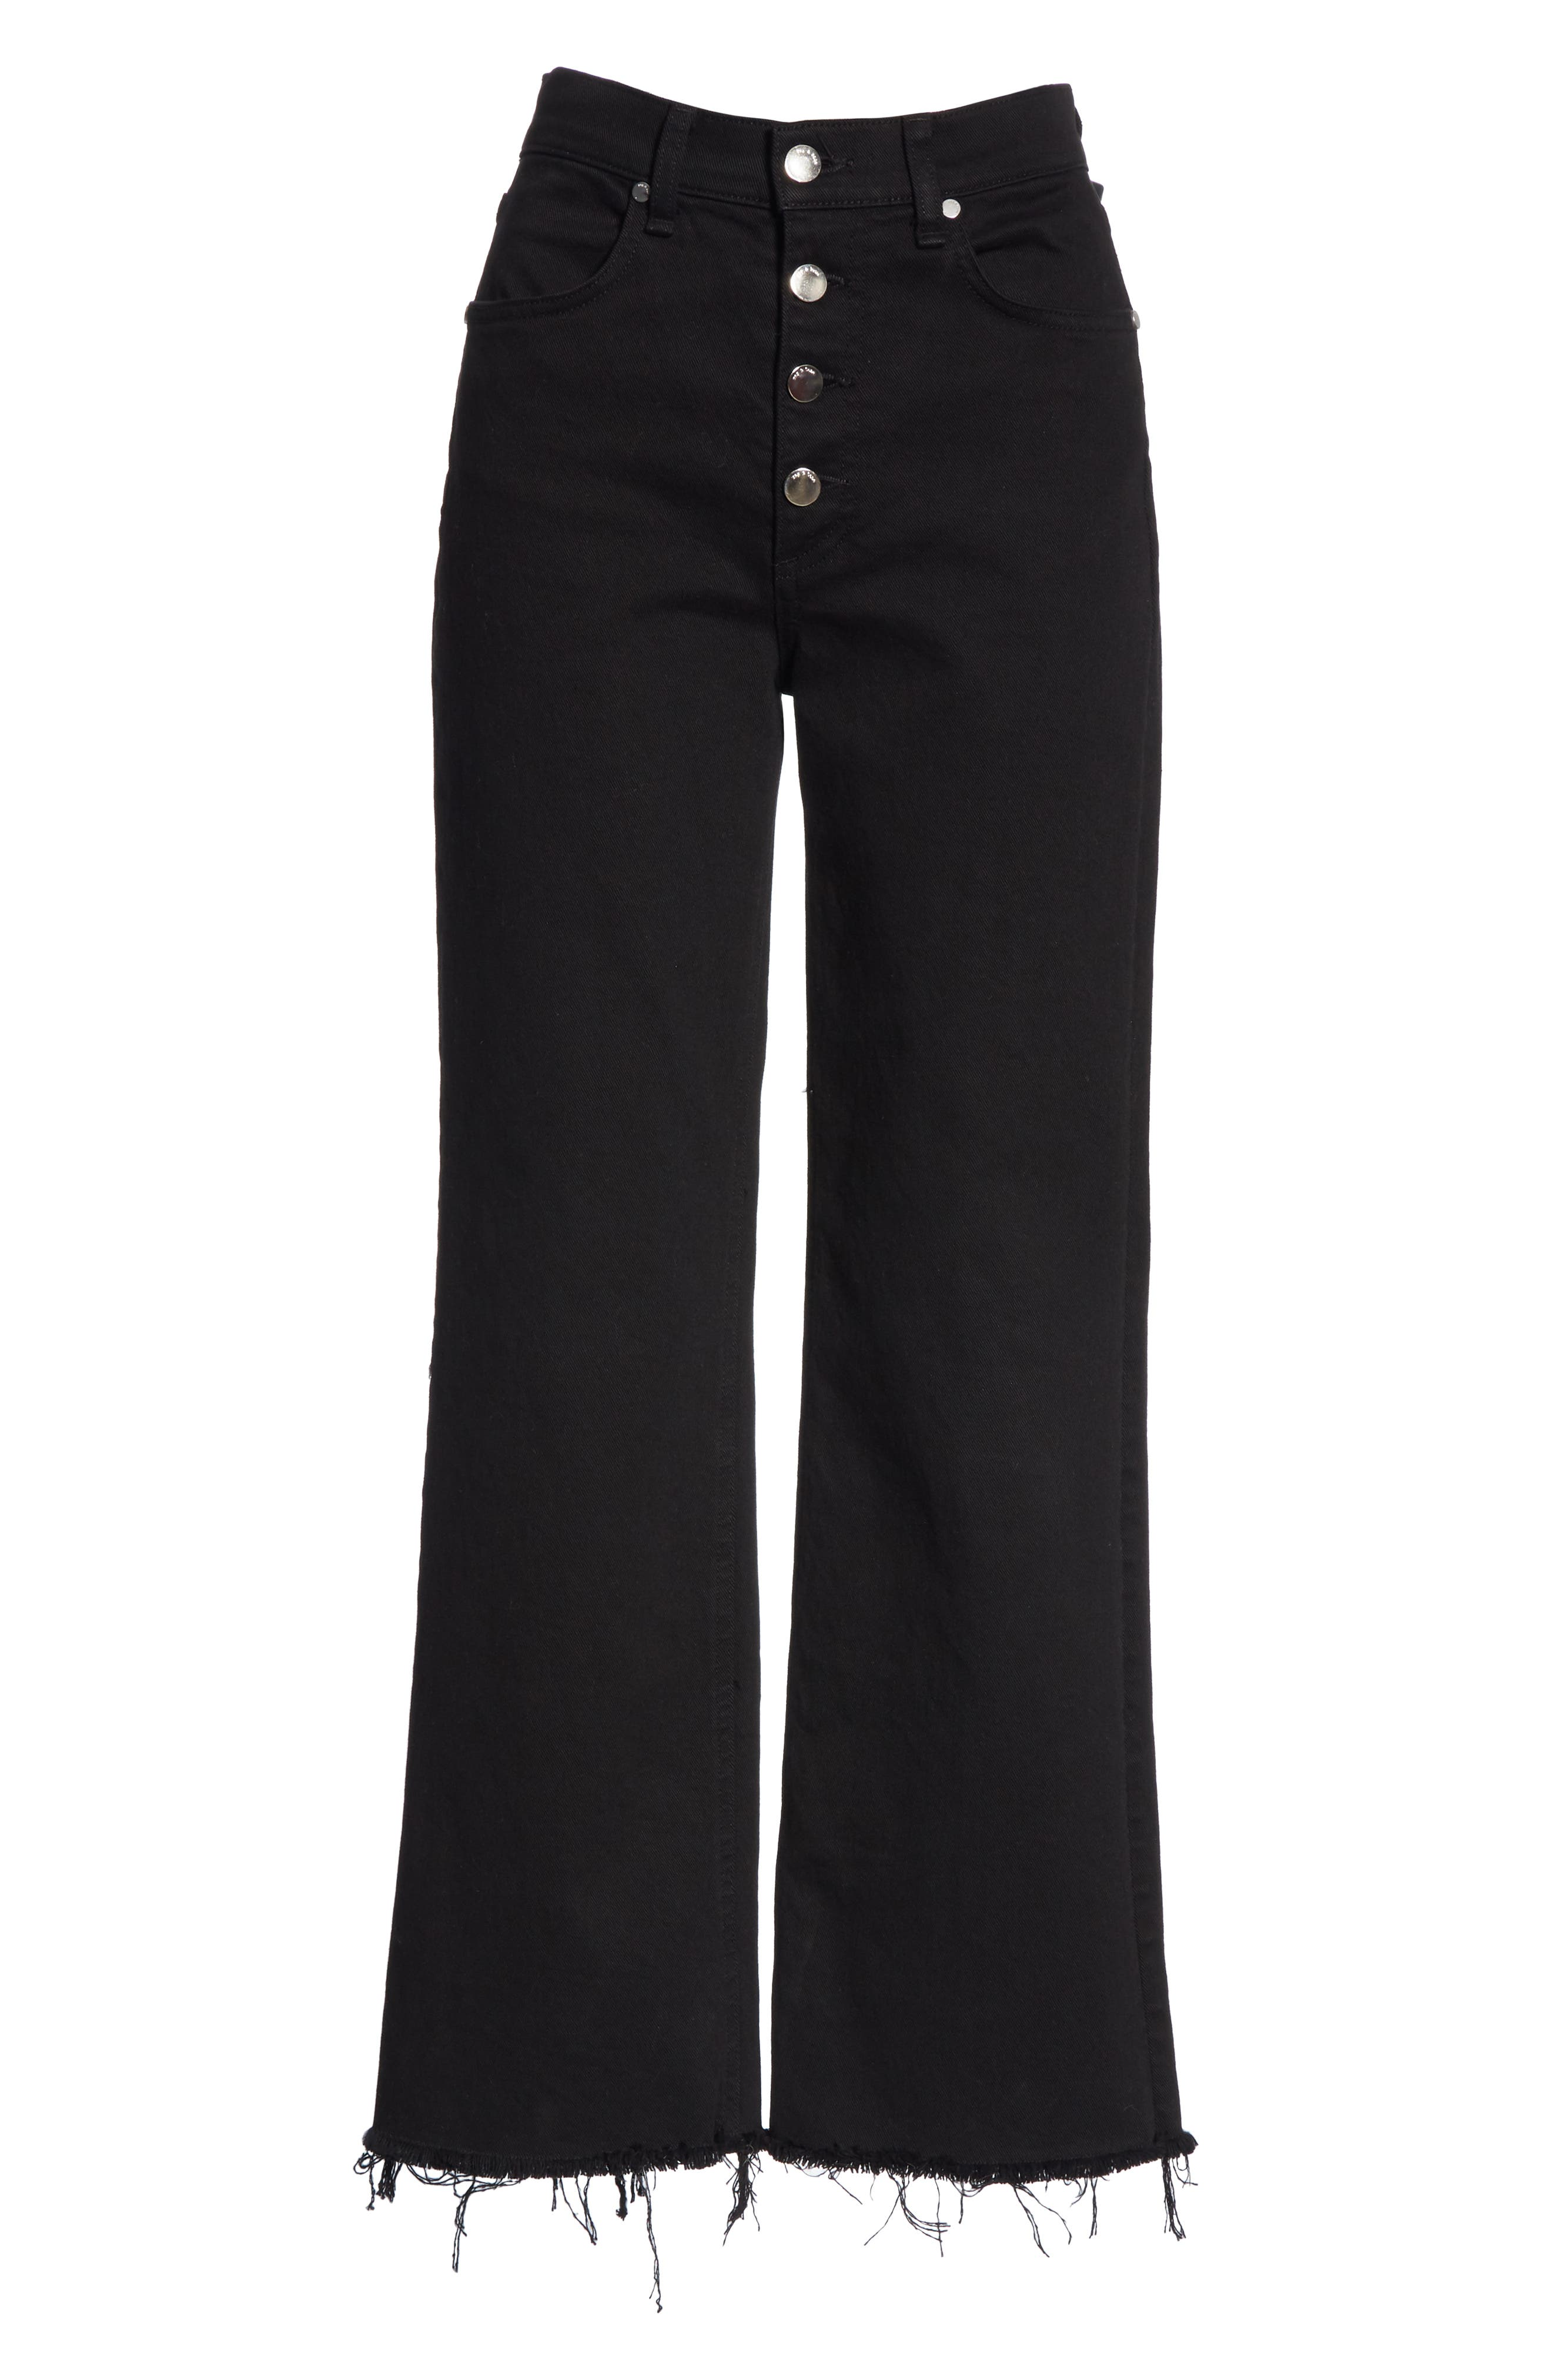 RAG & BONE,                             Justine High Waist Cutoff Wide Leg Jeans,                             Alternate thumbnail 7, color,                             BLACK